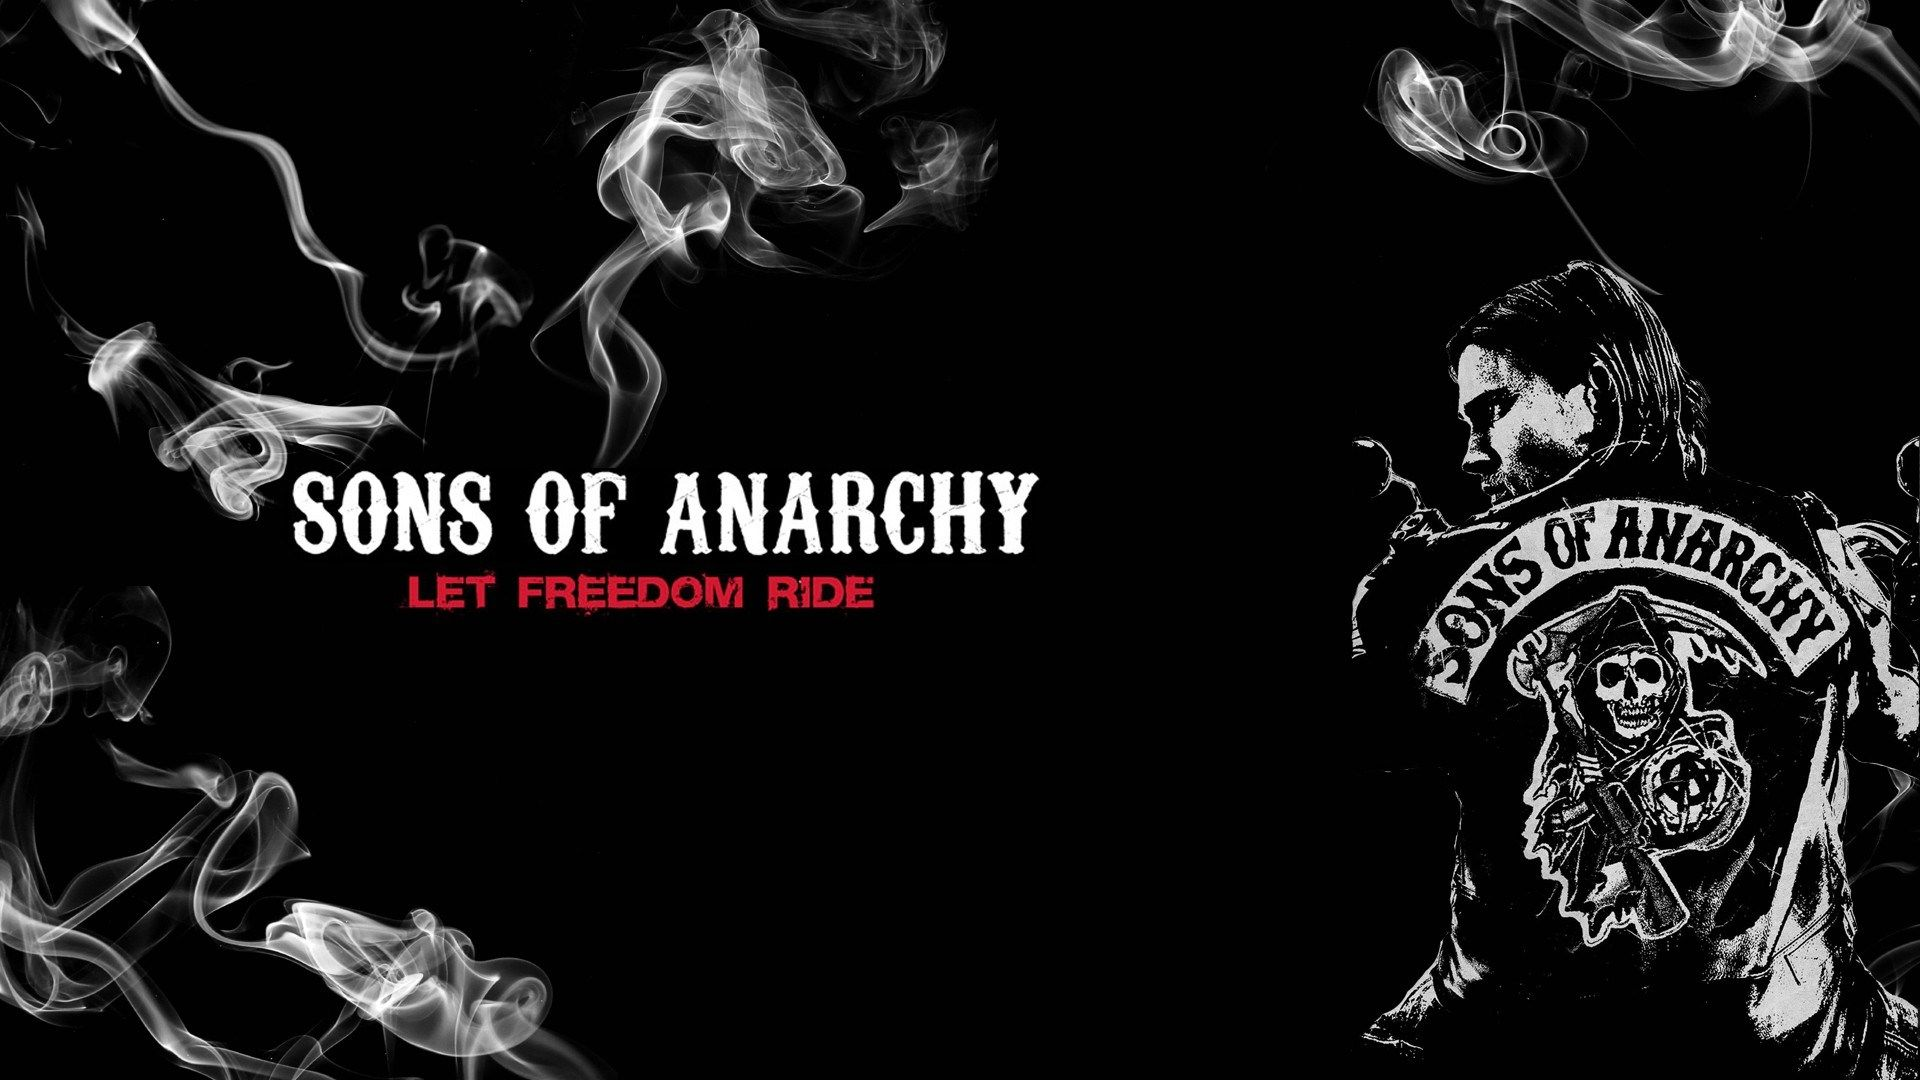 Free Hd Wallpaper Download Charlie Hunnam Wallpaper: Sons Of Anarchy Wallpaper Hd